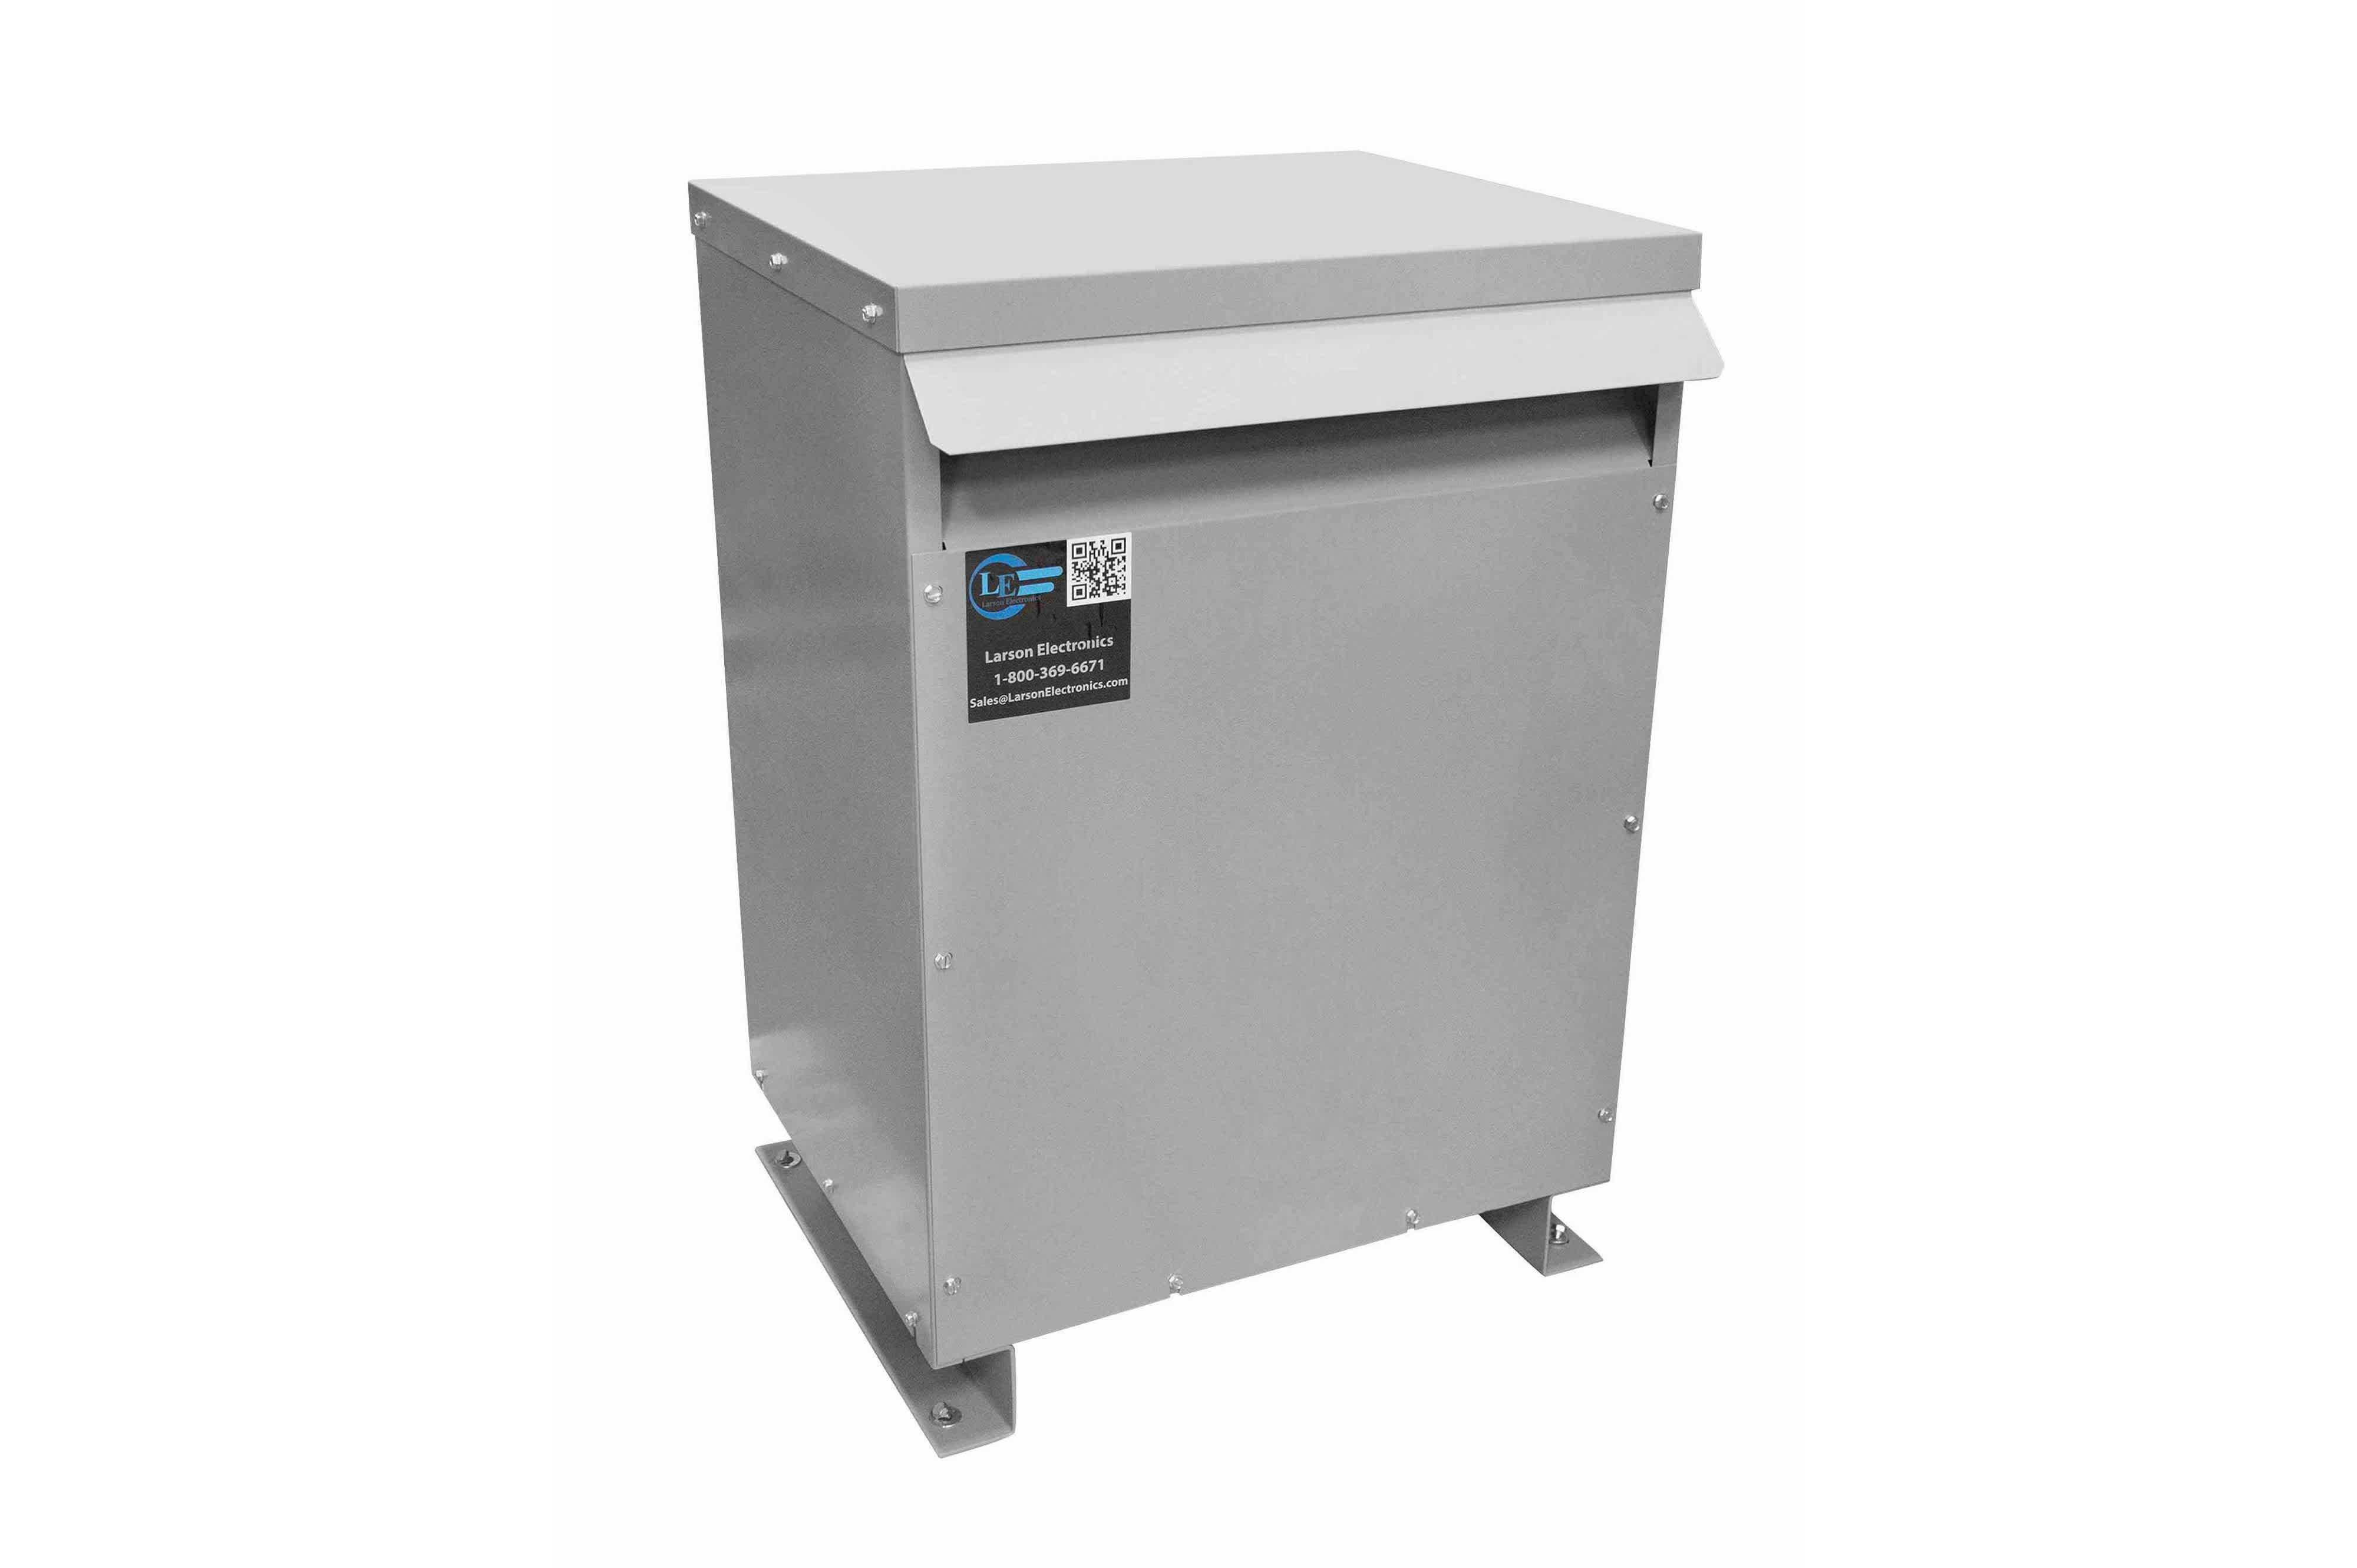 14 kVA 3PH Isolation Transformer, 480V Delta Primary, 208V Delta Secondary, N3R, Ventilated, 60 Hz